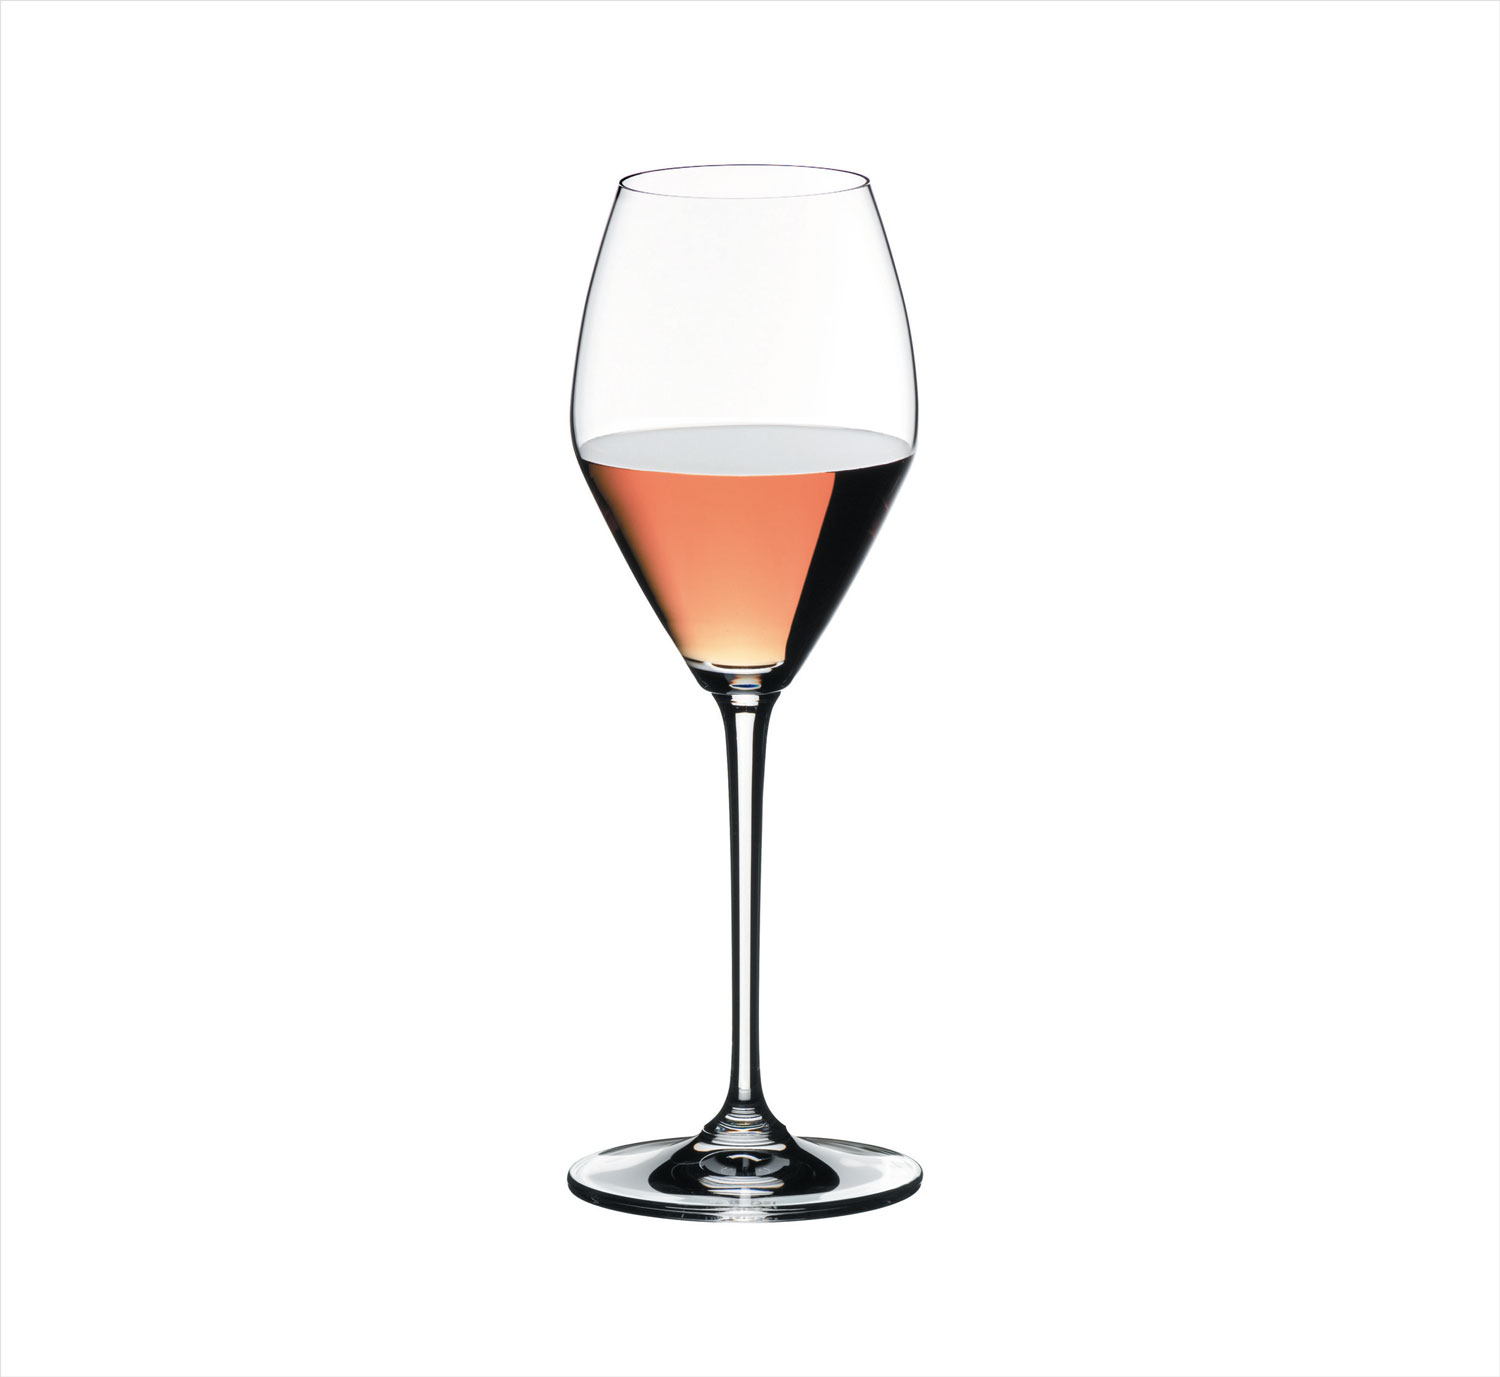 Riedel vinum extreme rose provence glass valentine's day gift ideas